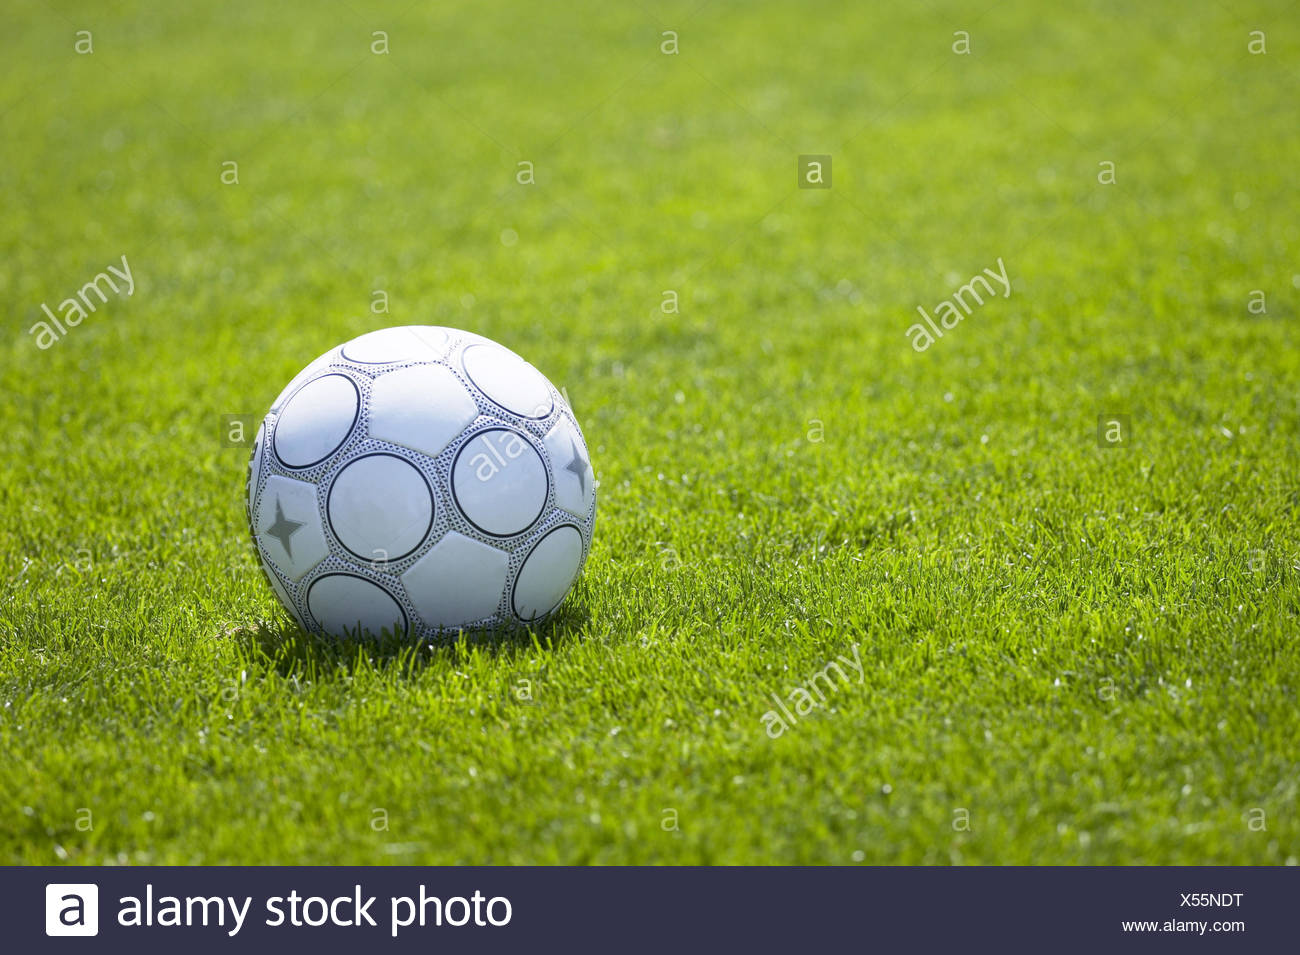 Turfs, football ball, sports device, leather ball ball, black-and-white, ball game, leather ball football, sport, sport, ball sport, football turf, football field, meadow, still life, object photography - Stock Image